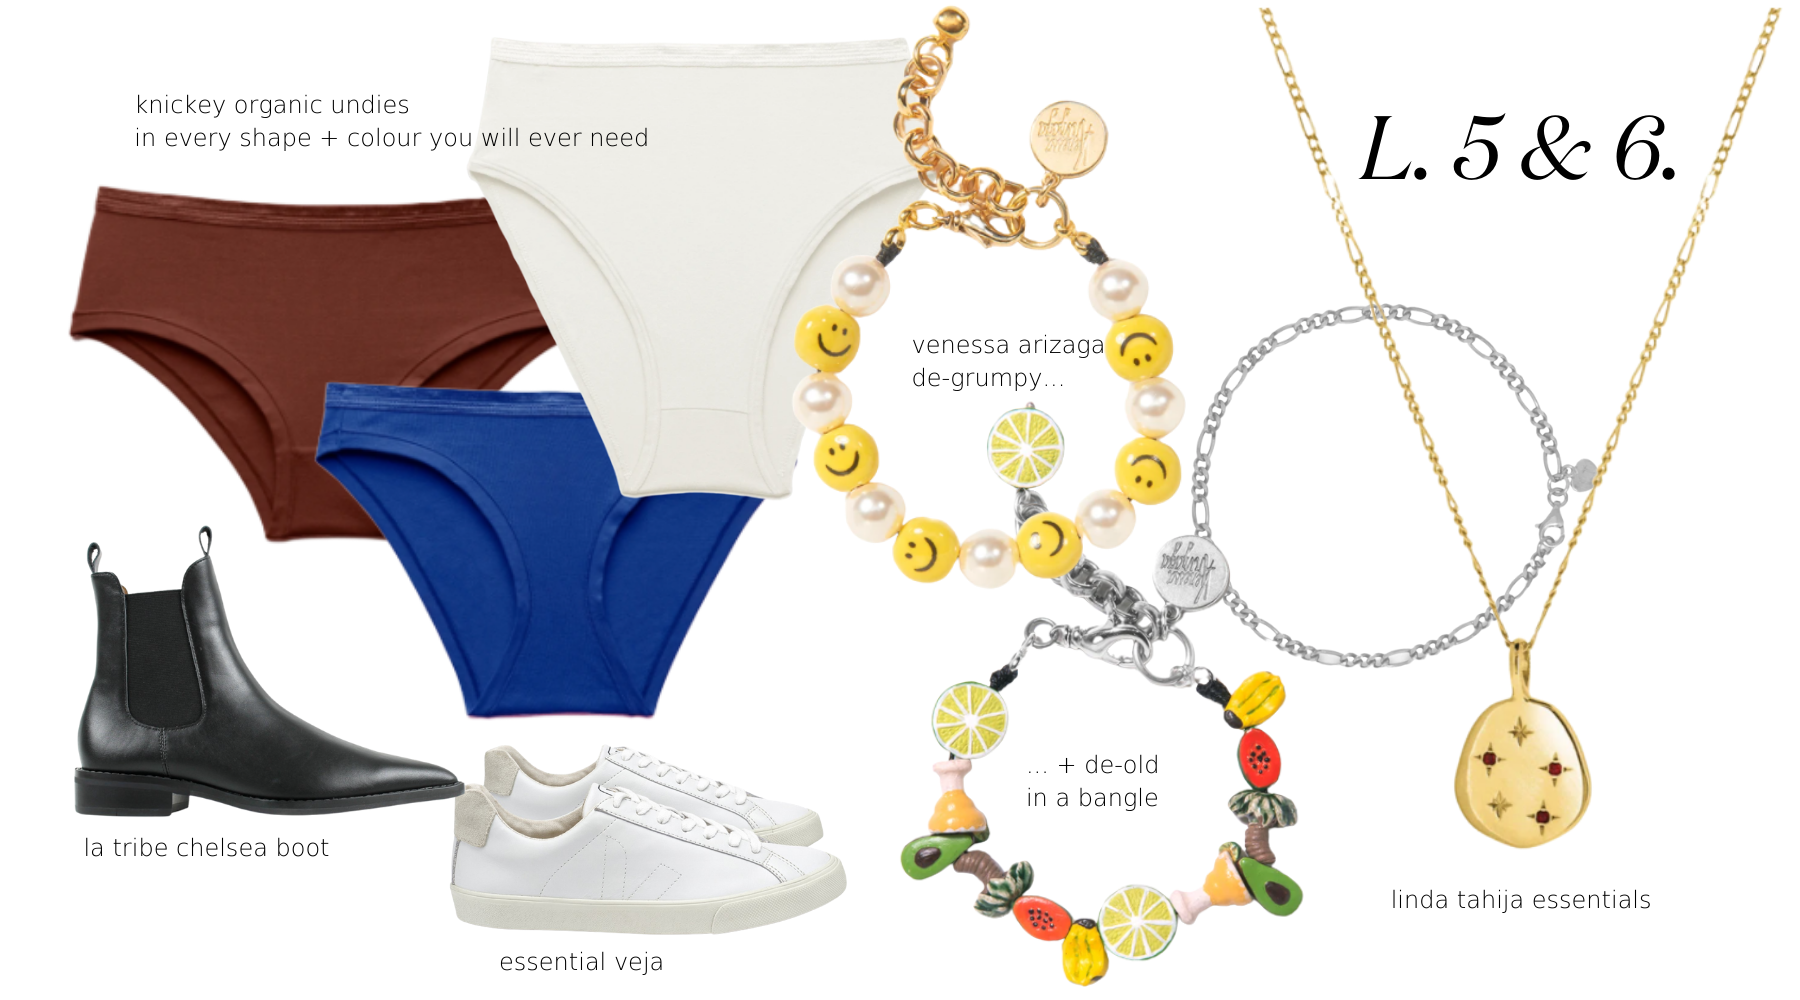 layers 5 and 6, shoes and accessories for cool menopause dressing includes jewellery by venessa arizaga, linda tahija and arms of eve. shoes by veja and la tribe